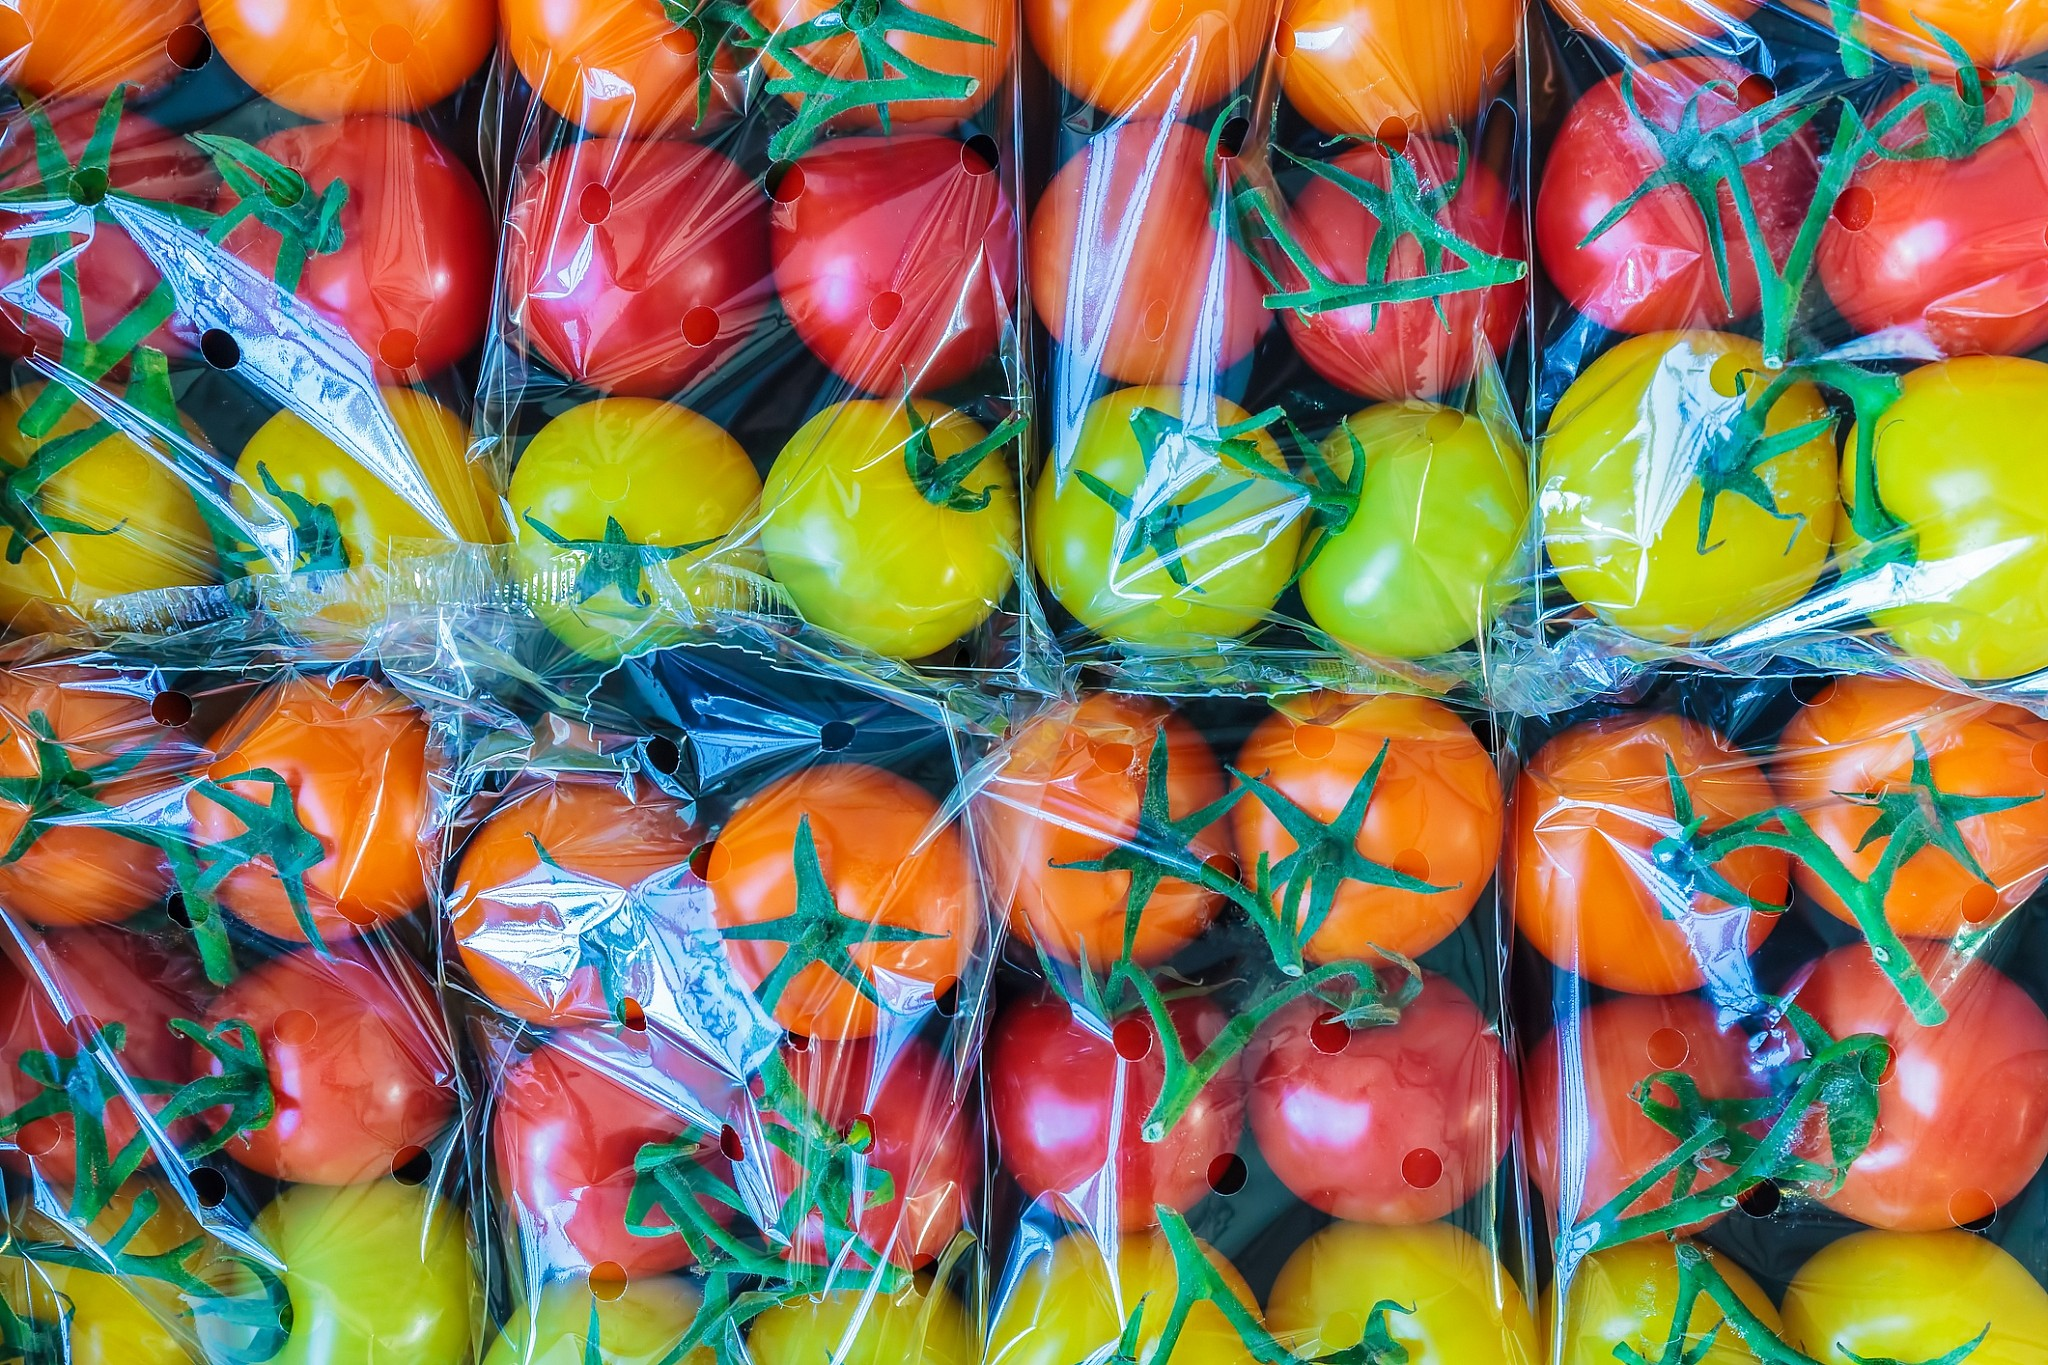 Waste not, wrap not? Environmentalists rip plan to cover produce in